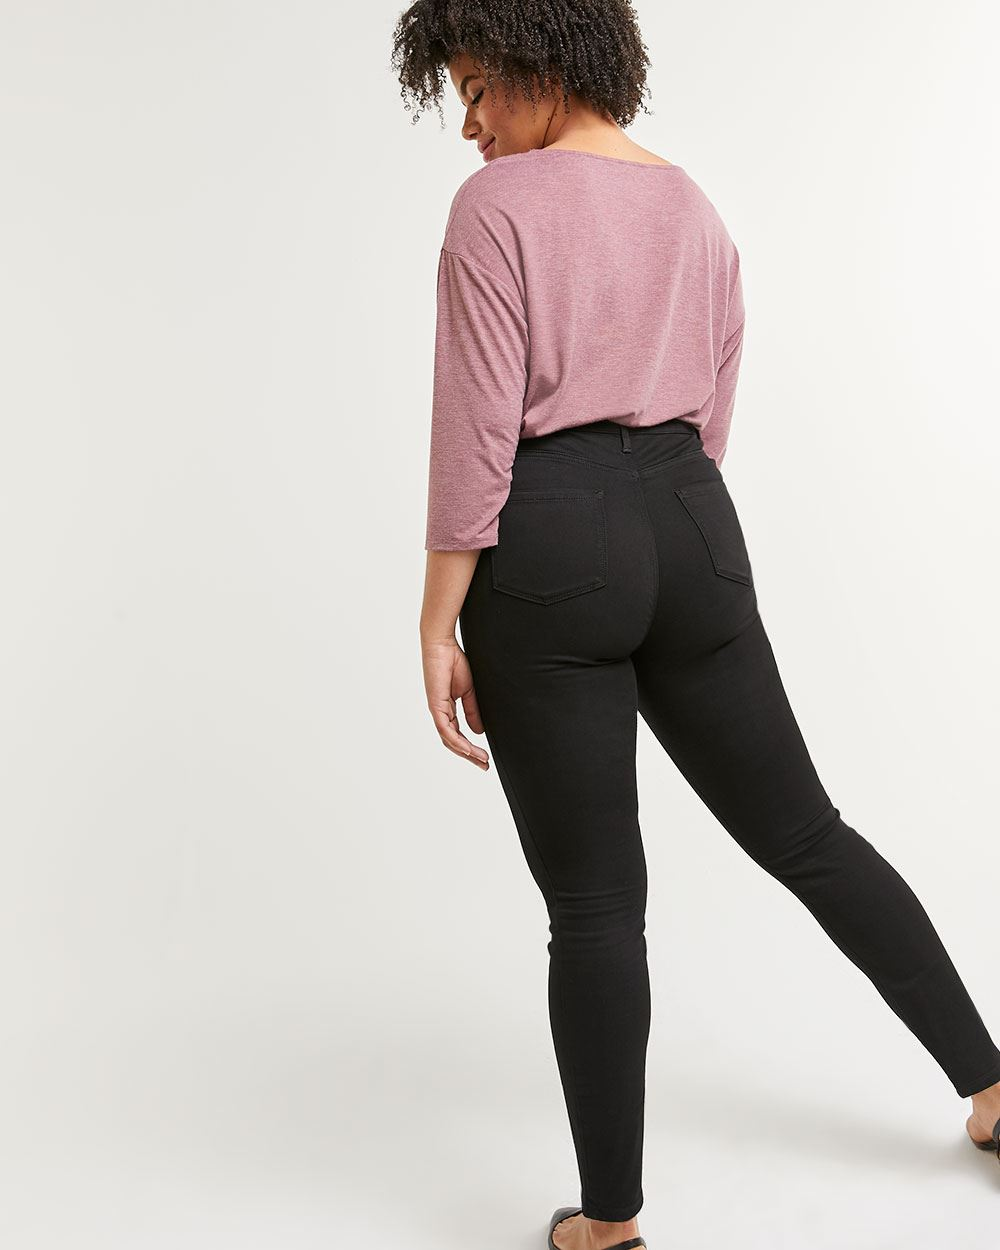 Super High Rise Skinny Jeans The Insider